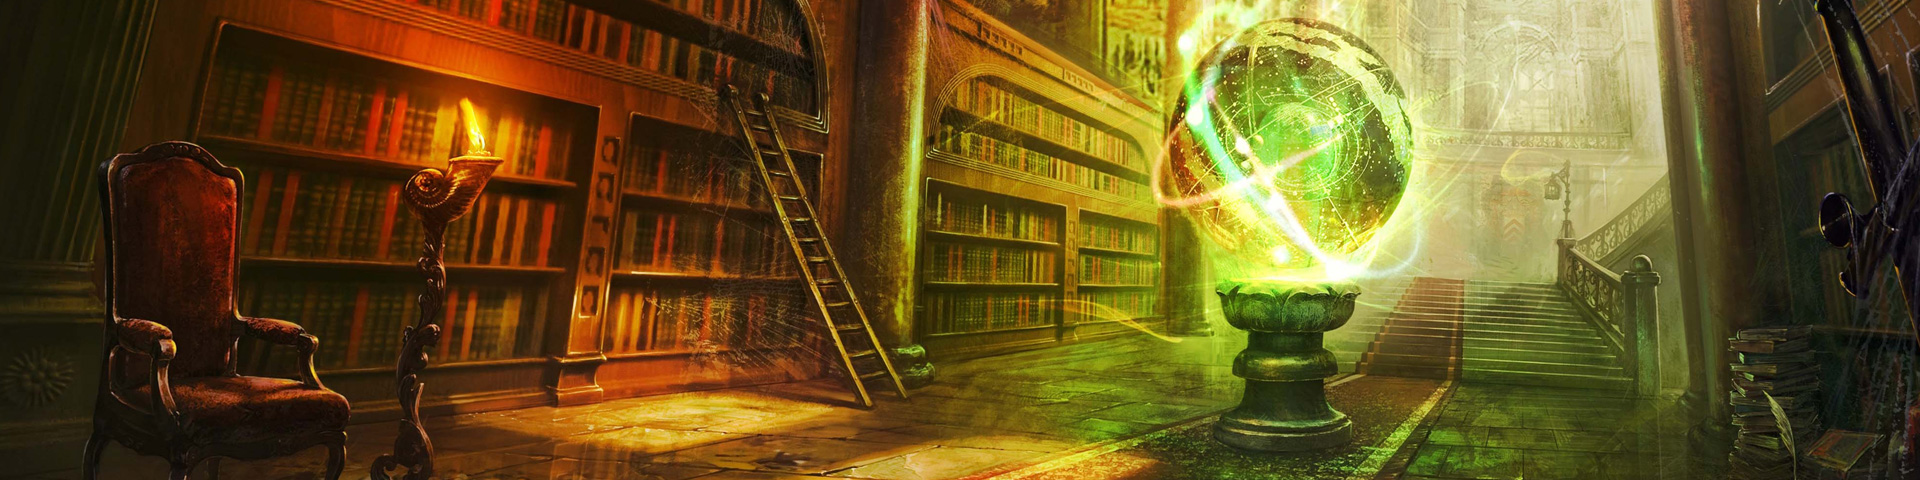 An arcane sphere illuminates stacks of books in a fantasy library.